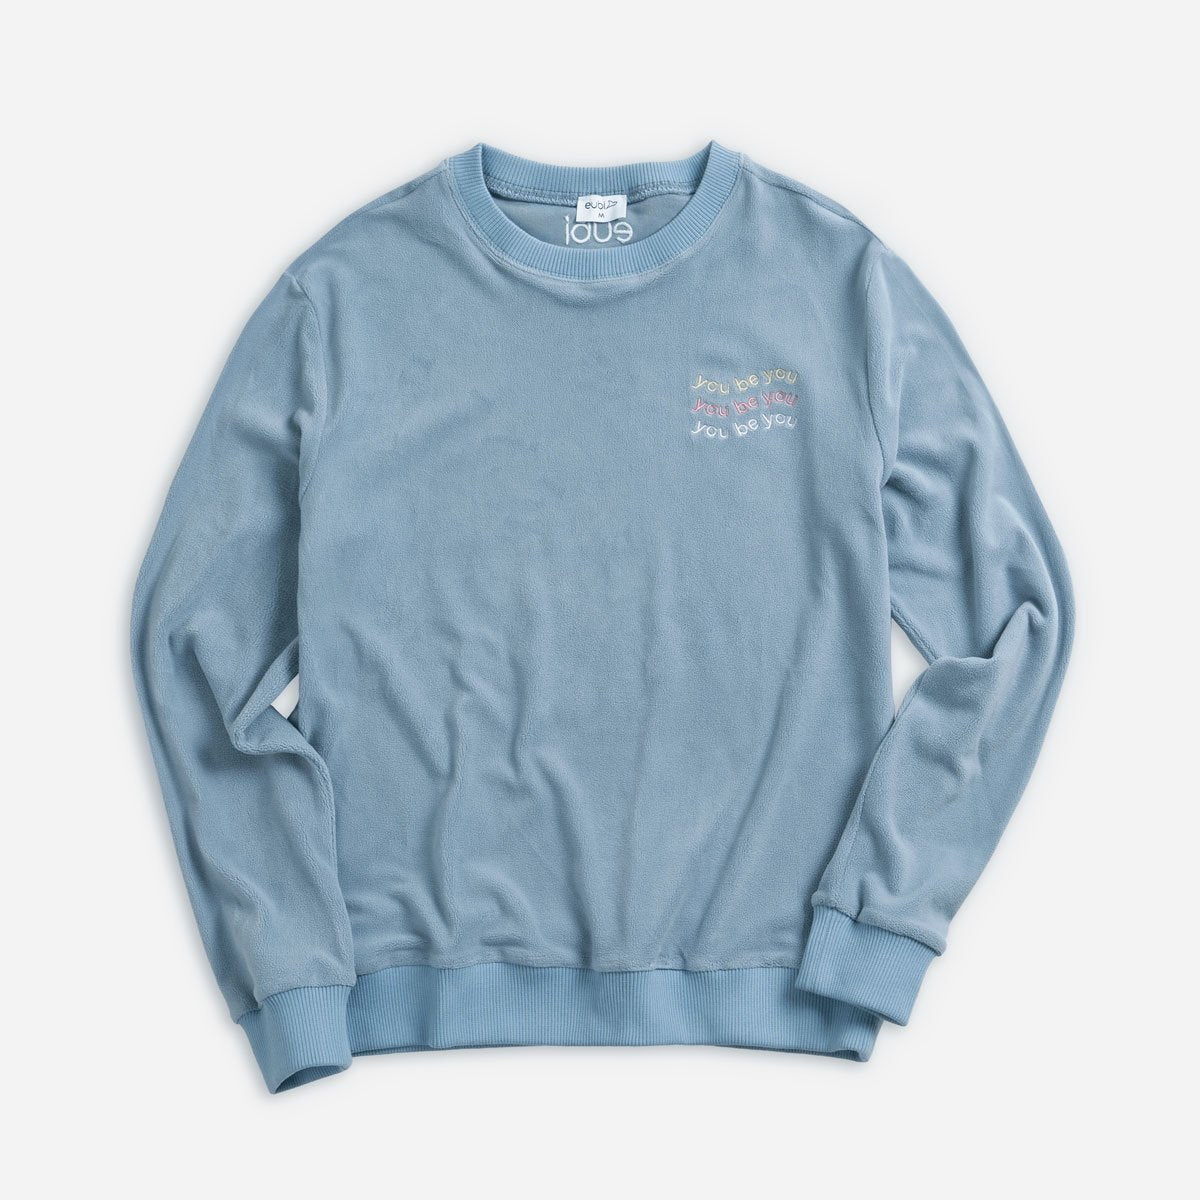 SoftAF Blue Sweatshirt